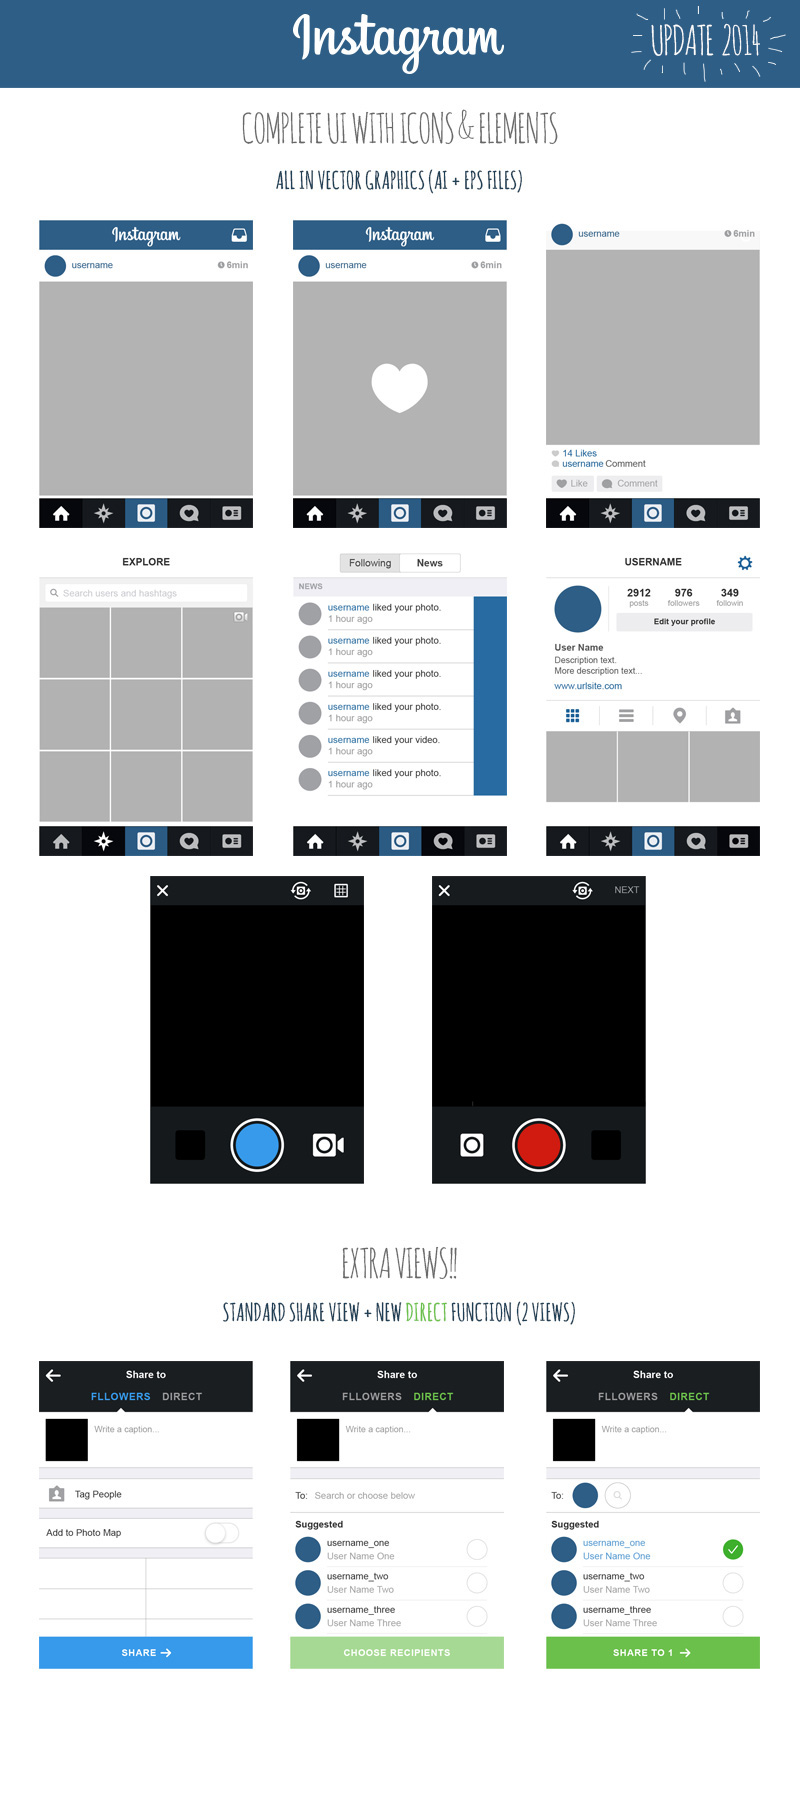 free instagram ui ios7 2014 views icons elements on behance. Black Bedroom Furniture Sets. Home Design Ideas